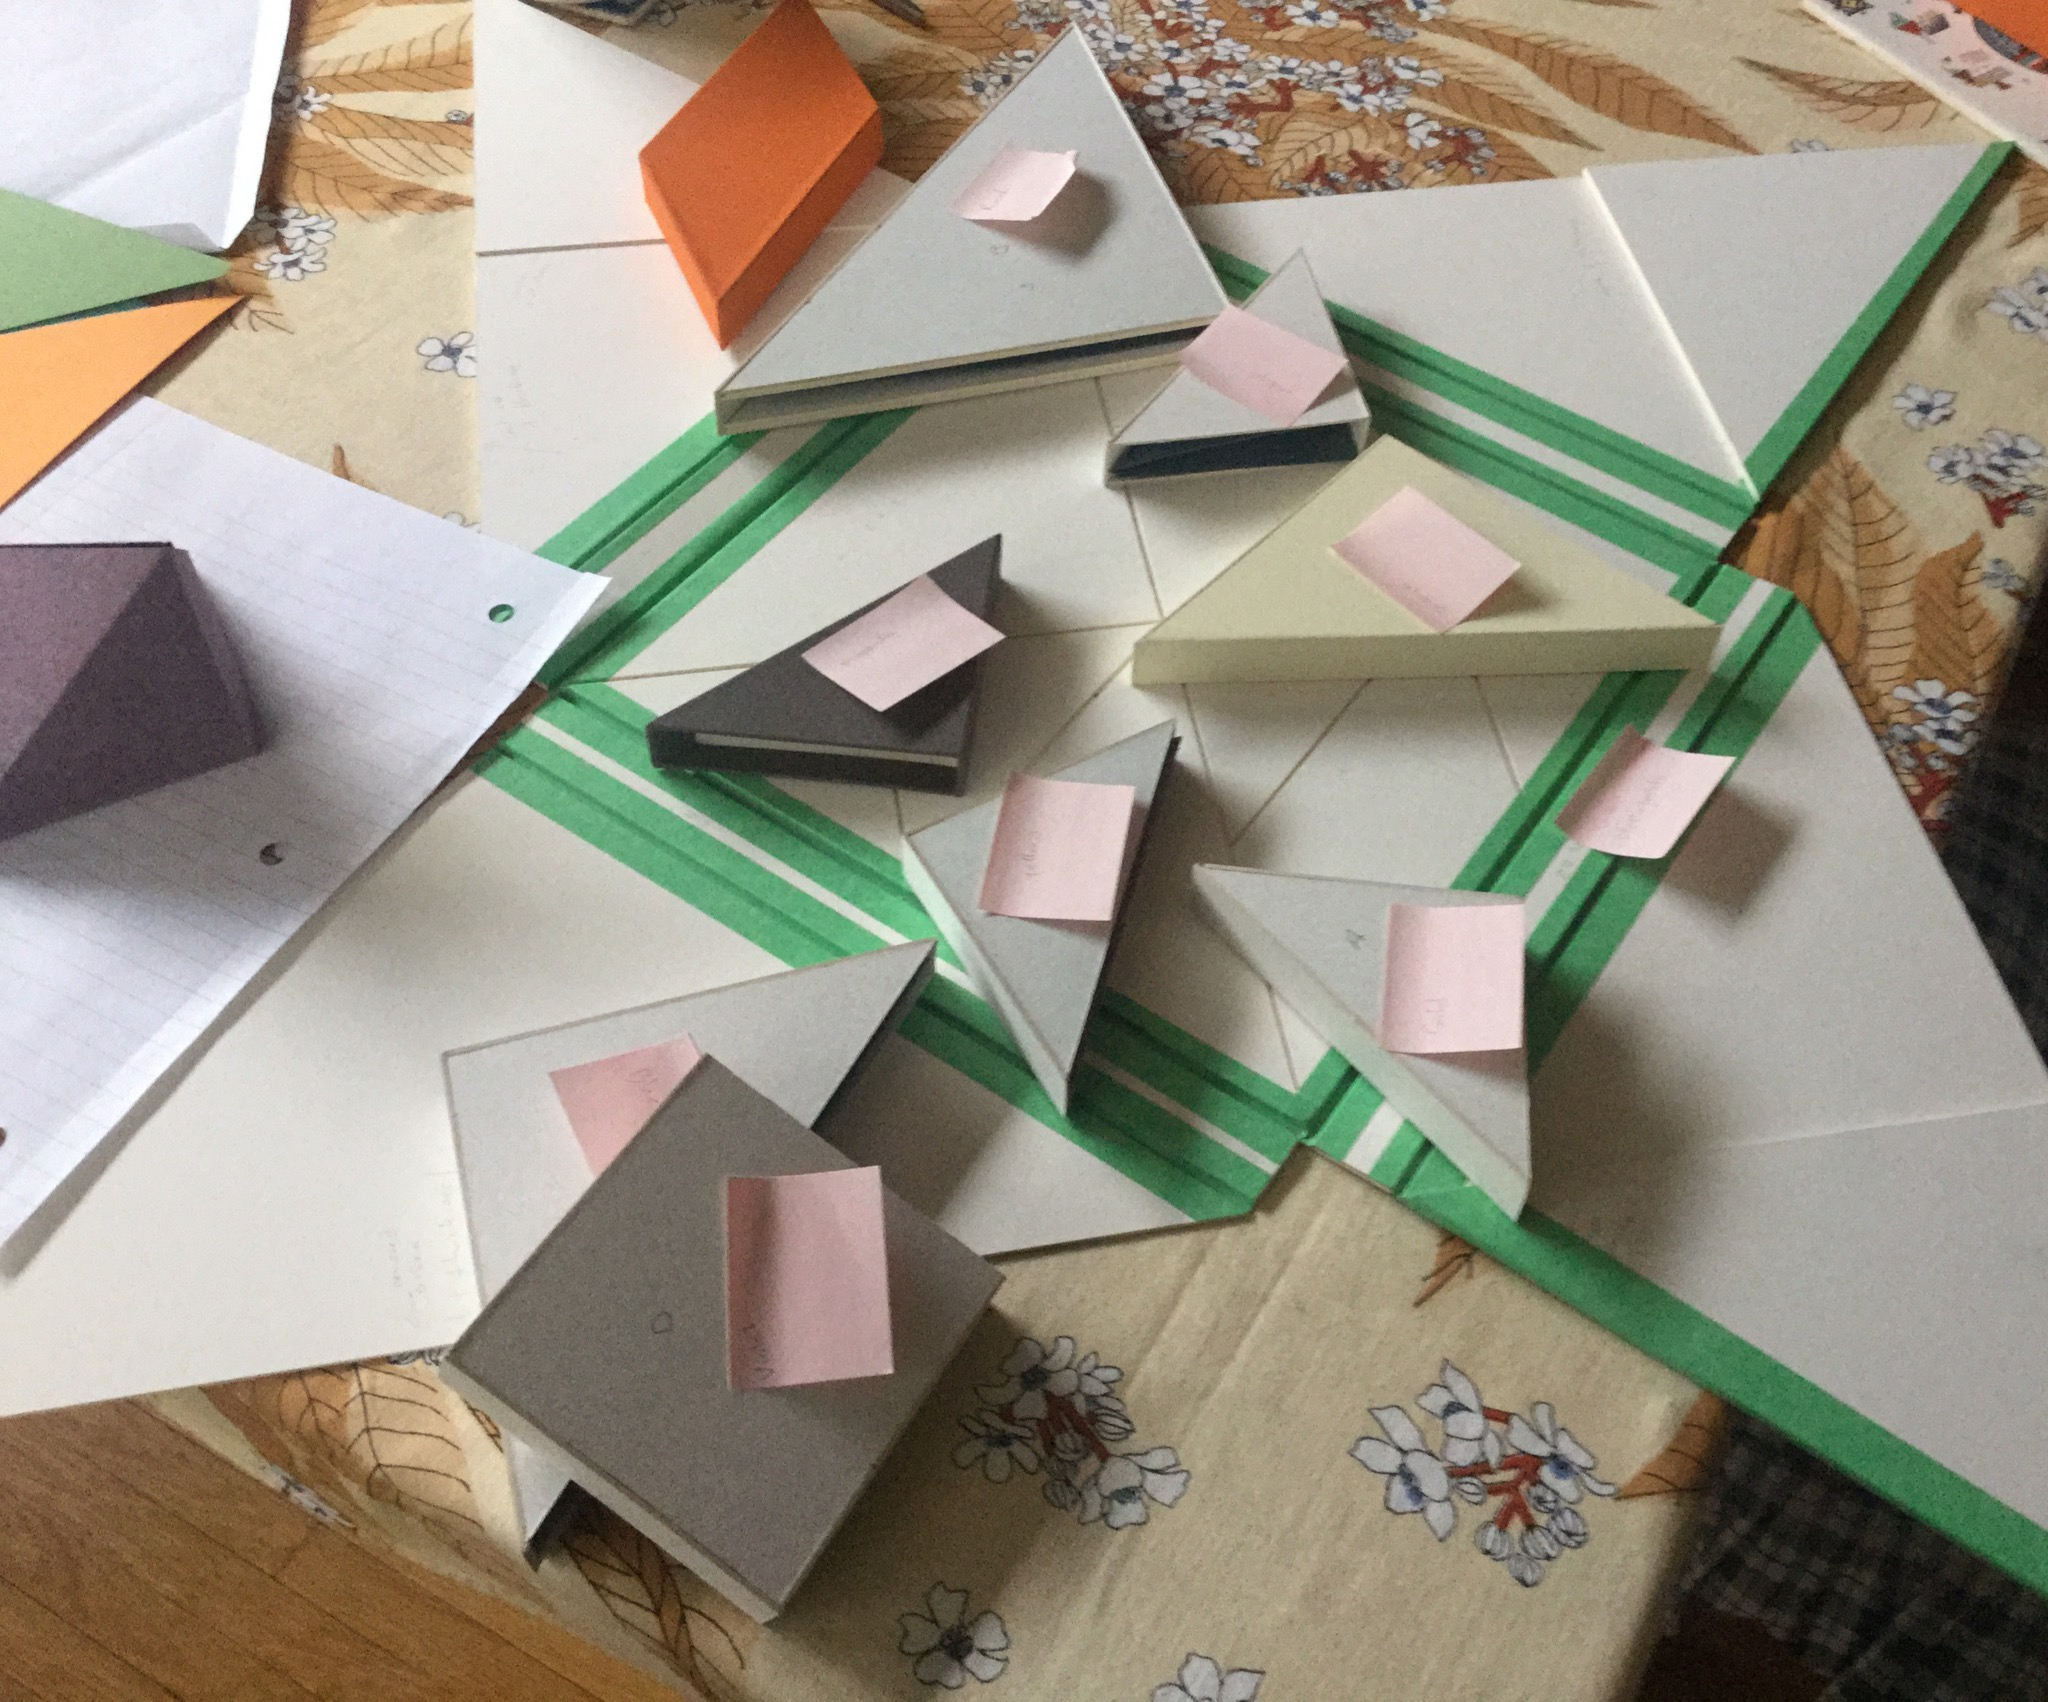 Initial prototypes of various book structures.